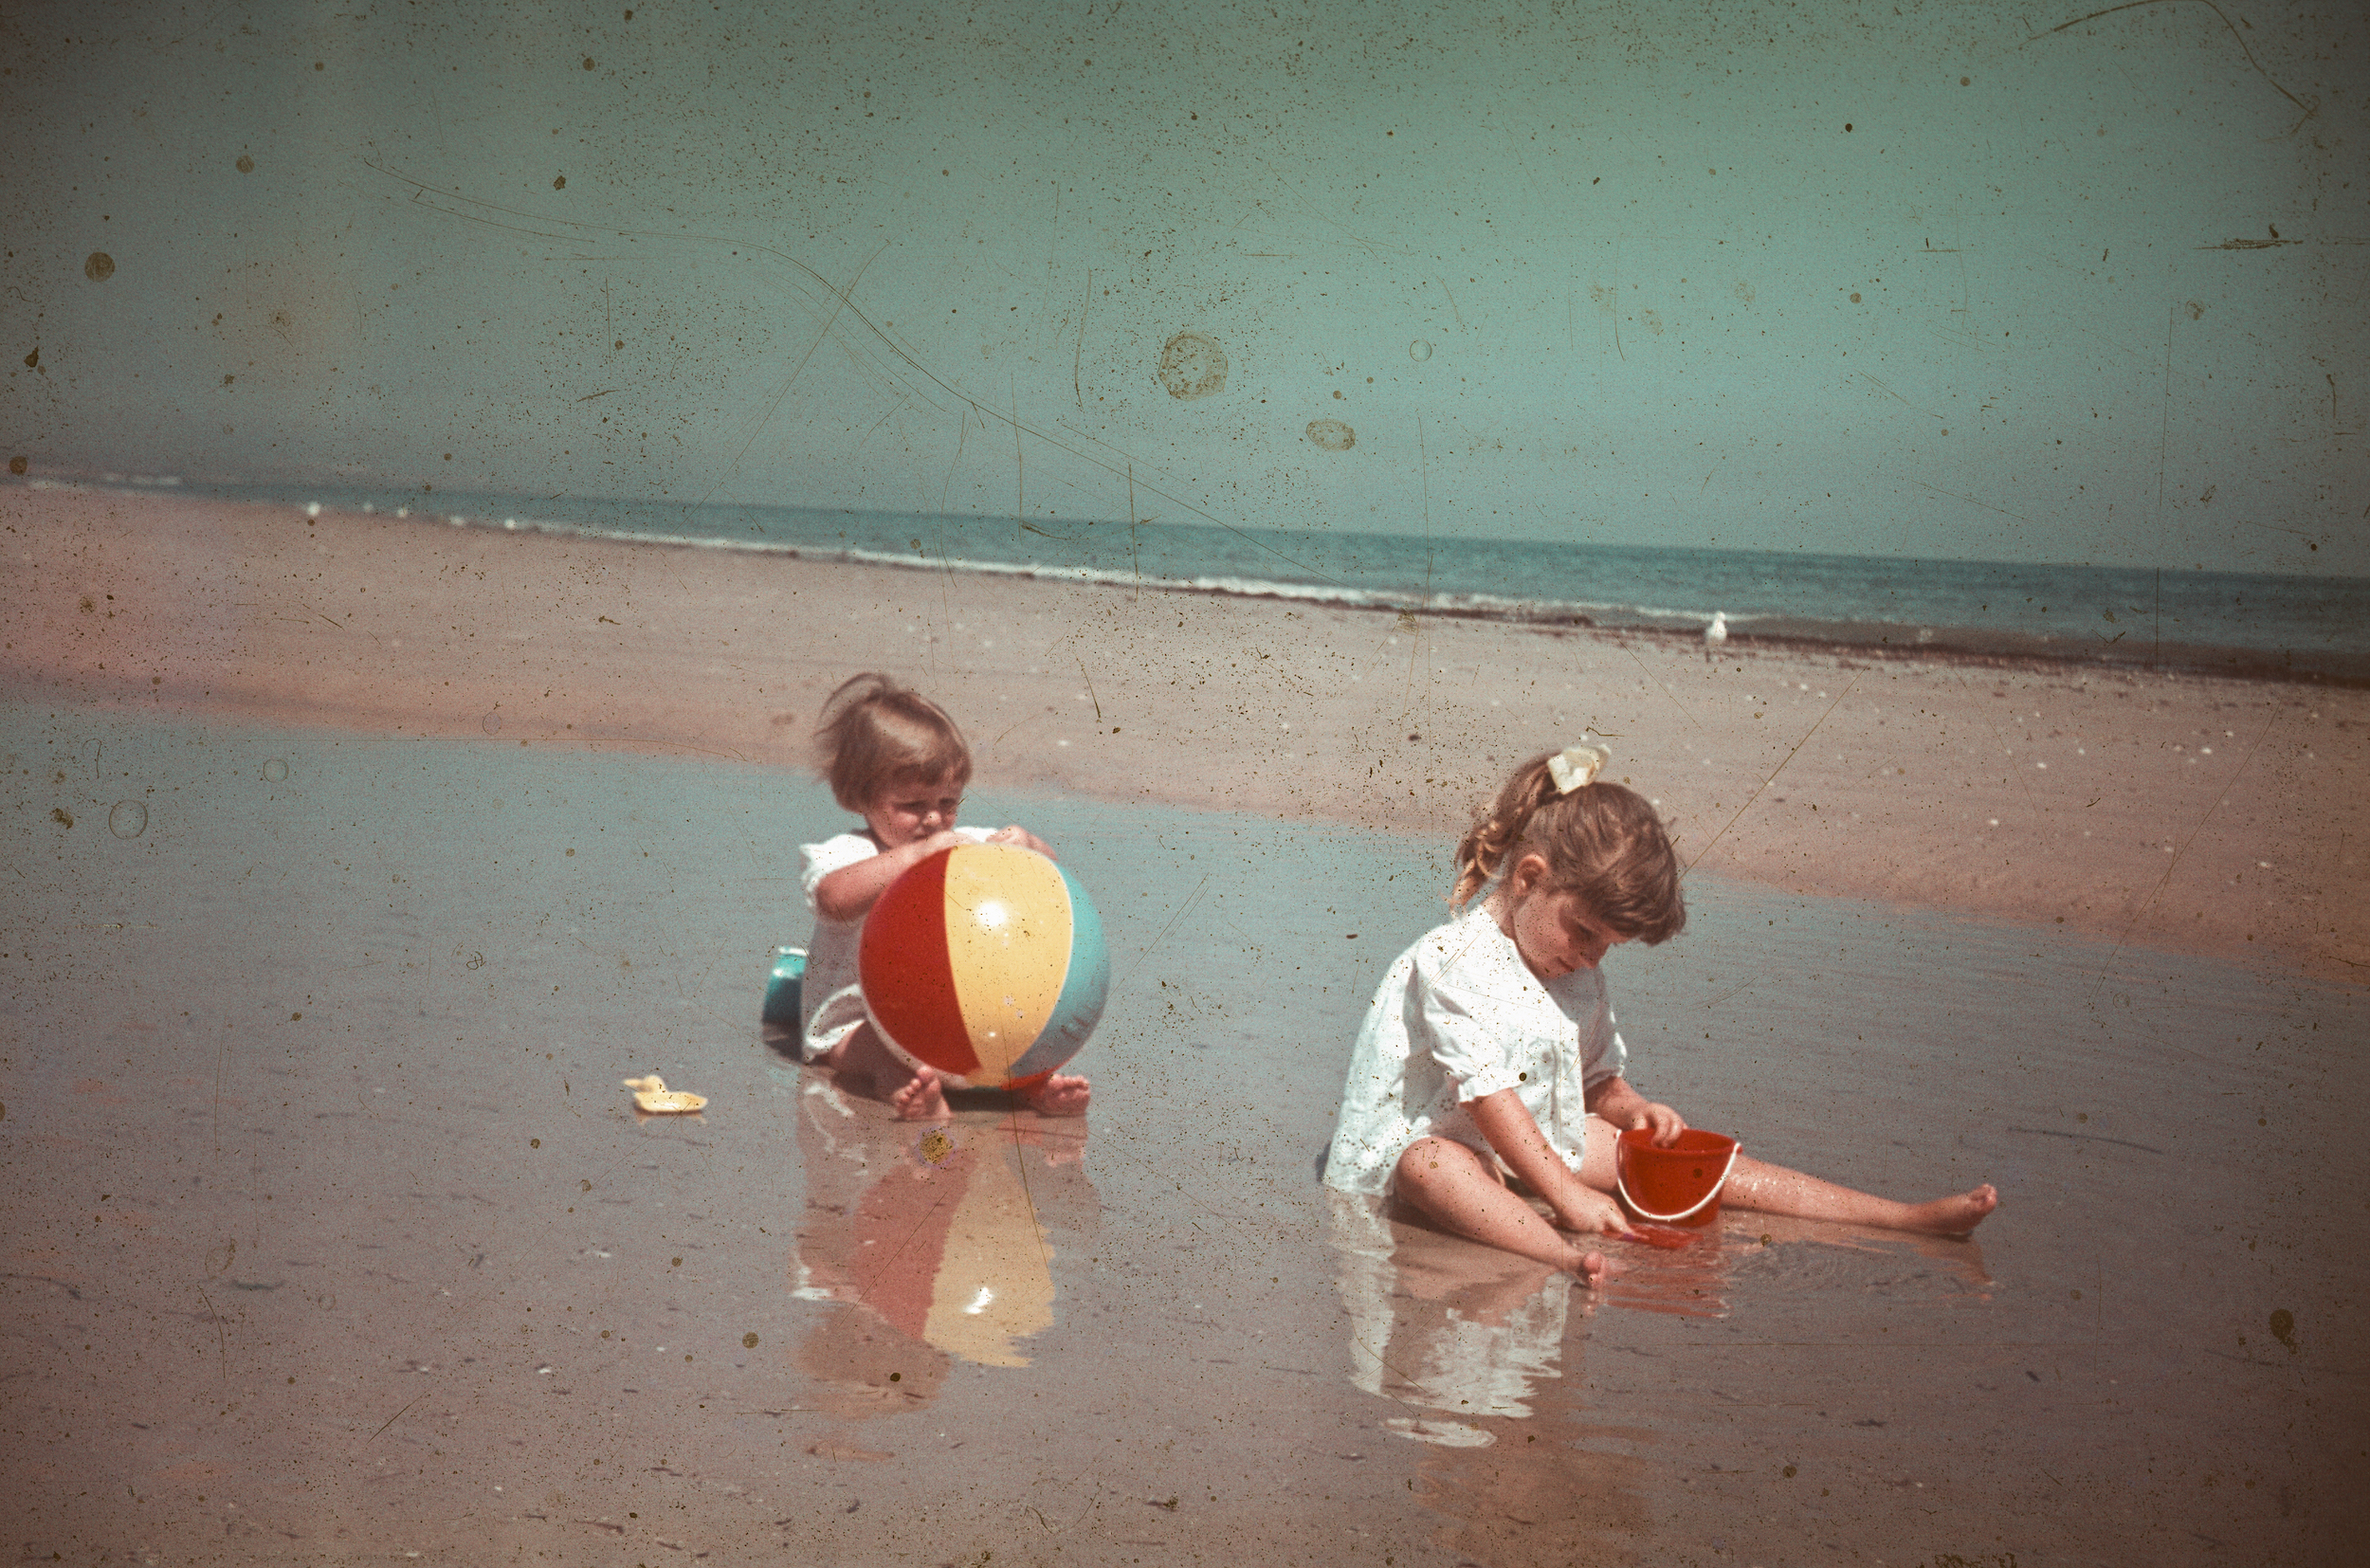 2 Girls on The Beach - Date and Location Unknown